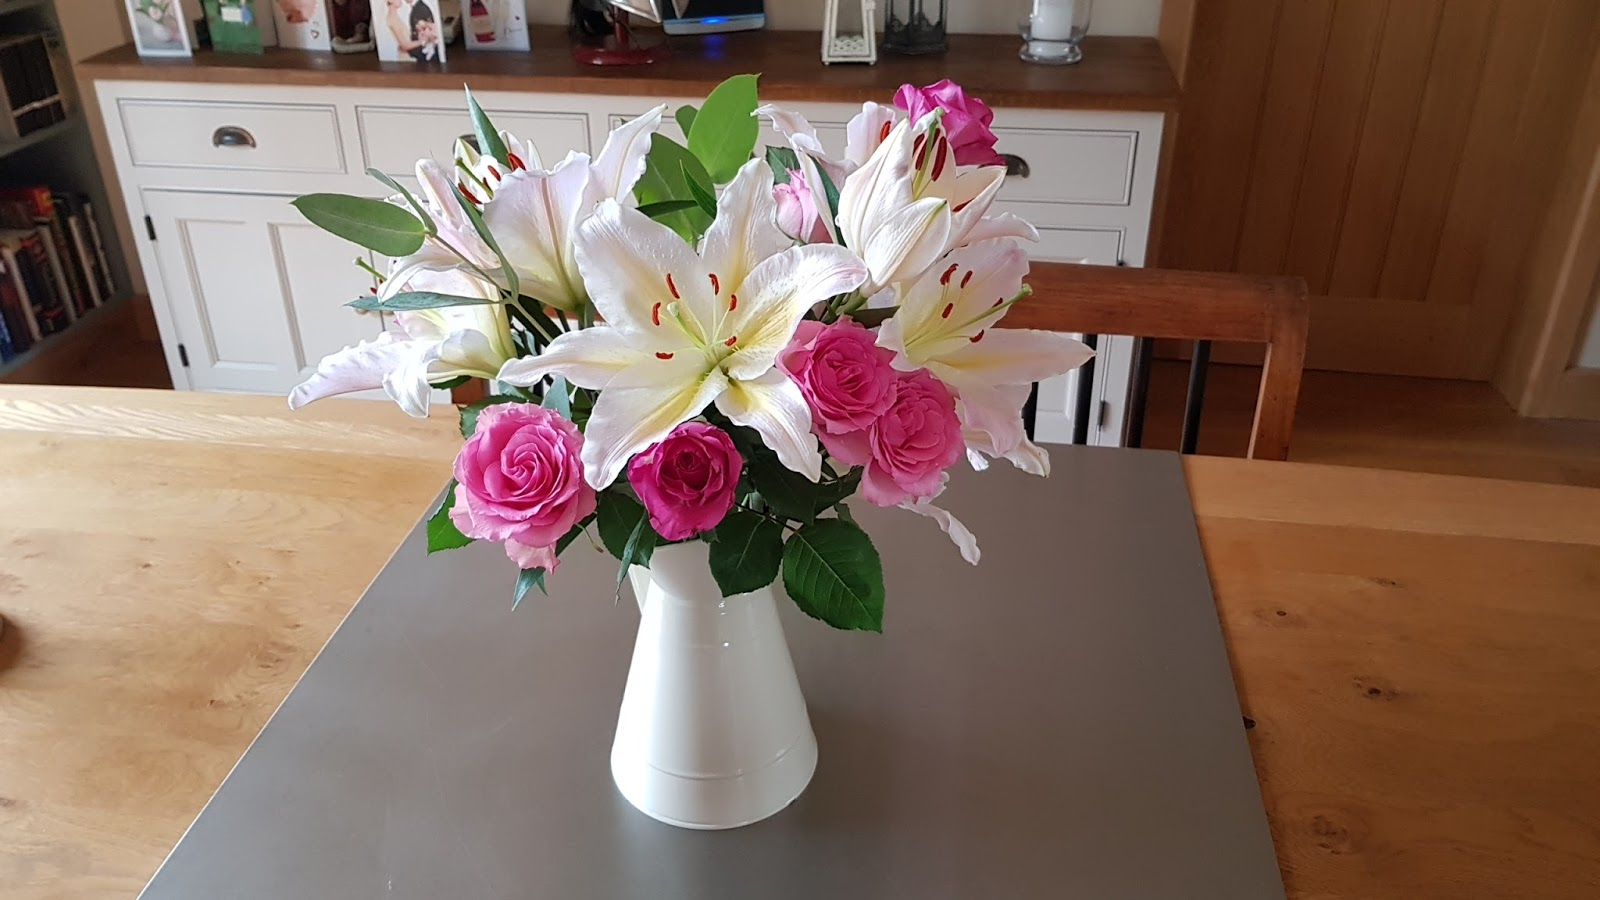 The thoughts of chairman bill rubbish flowers hay received a beautiful bunch flowers that included some lilies while they look fantastic the lilies make the house smell like a funeral parlour and izmirmasajfo